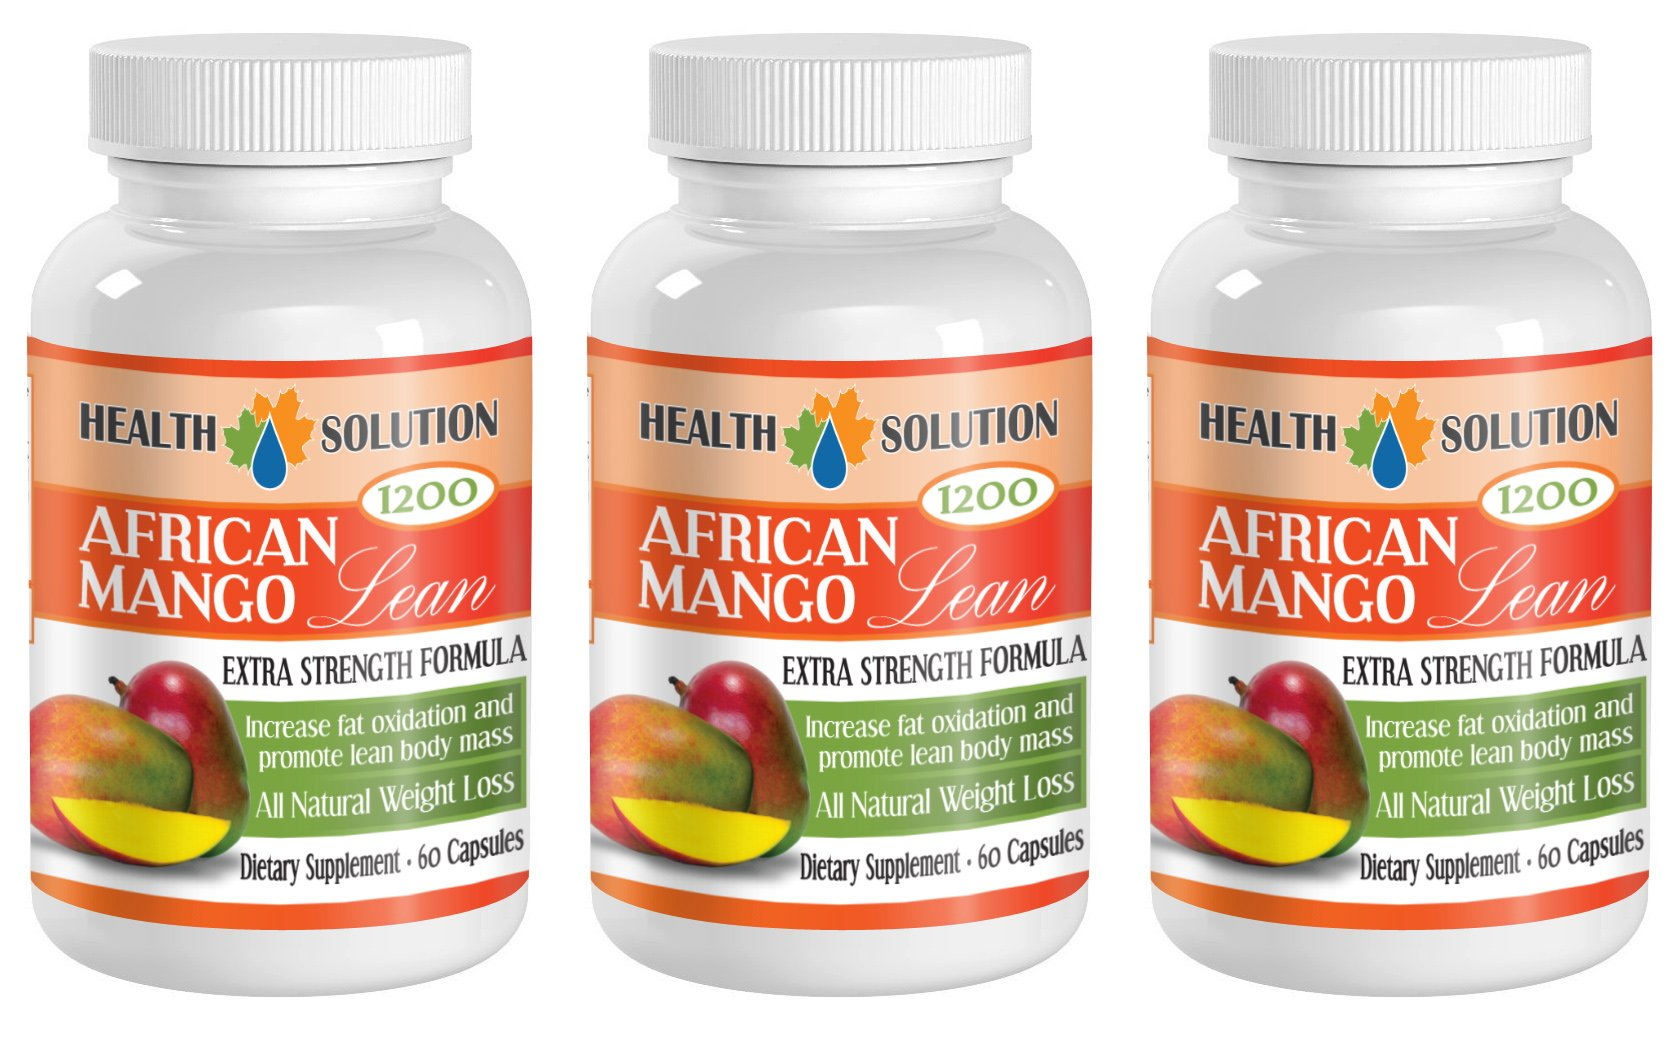 Best African mango seed extract - AFRICAN MANGO LEAN Extra strength Formula 1200mg - Weight loss herbal supplements (3 Bottles 180 capsules) by Health Solution Prime